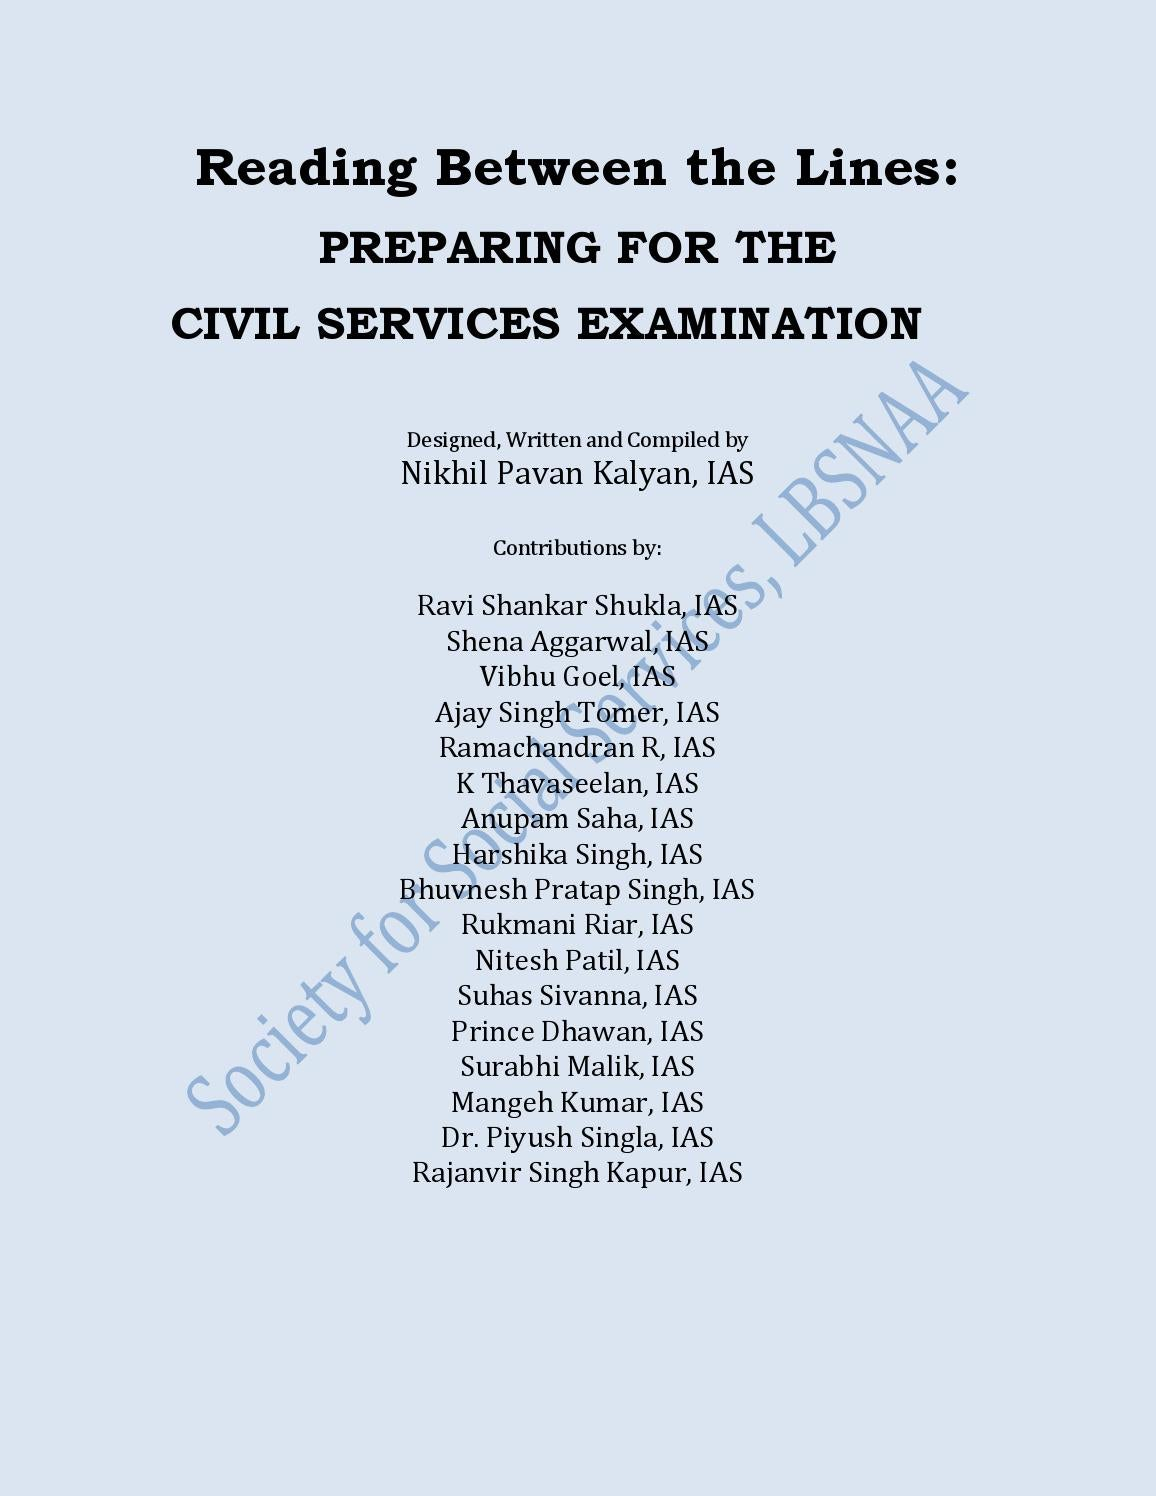 Preparing for civil services examination by Parth Pandya - issuu